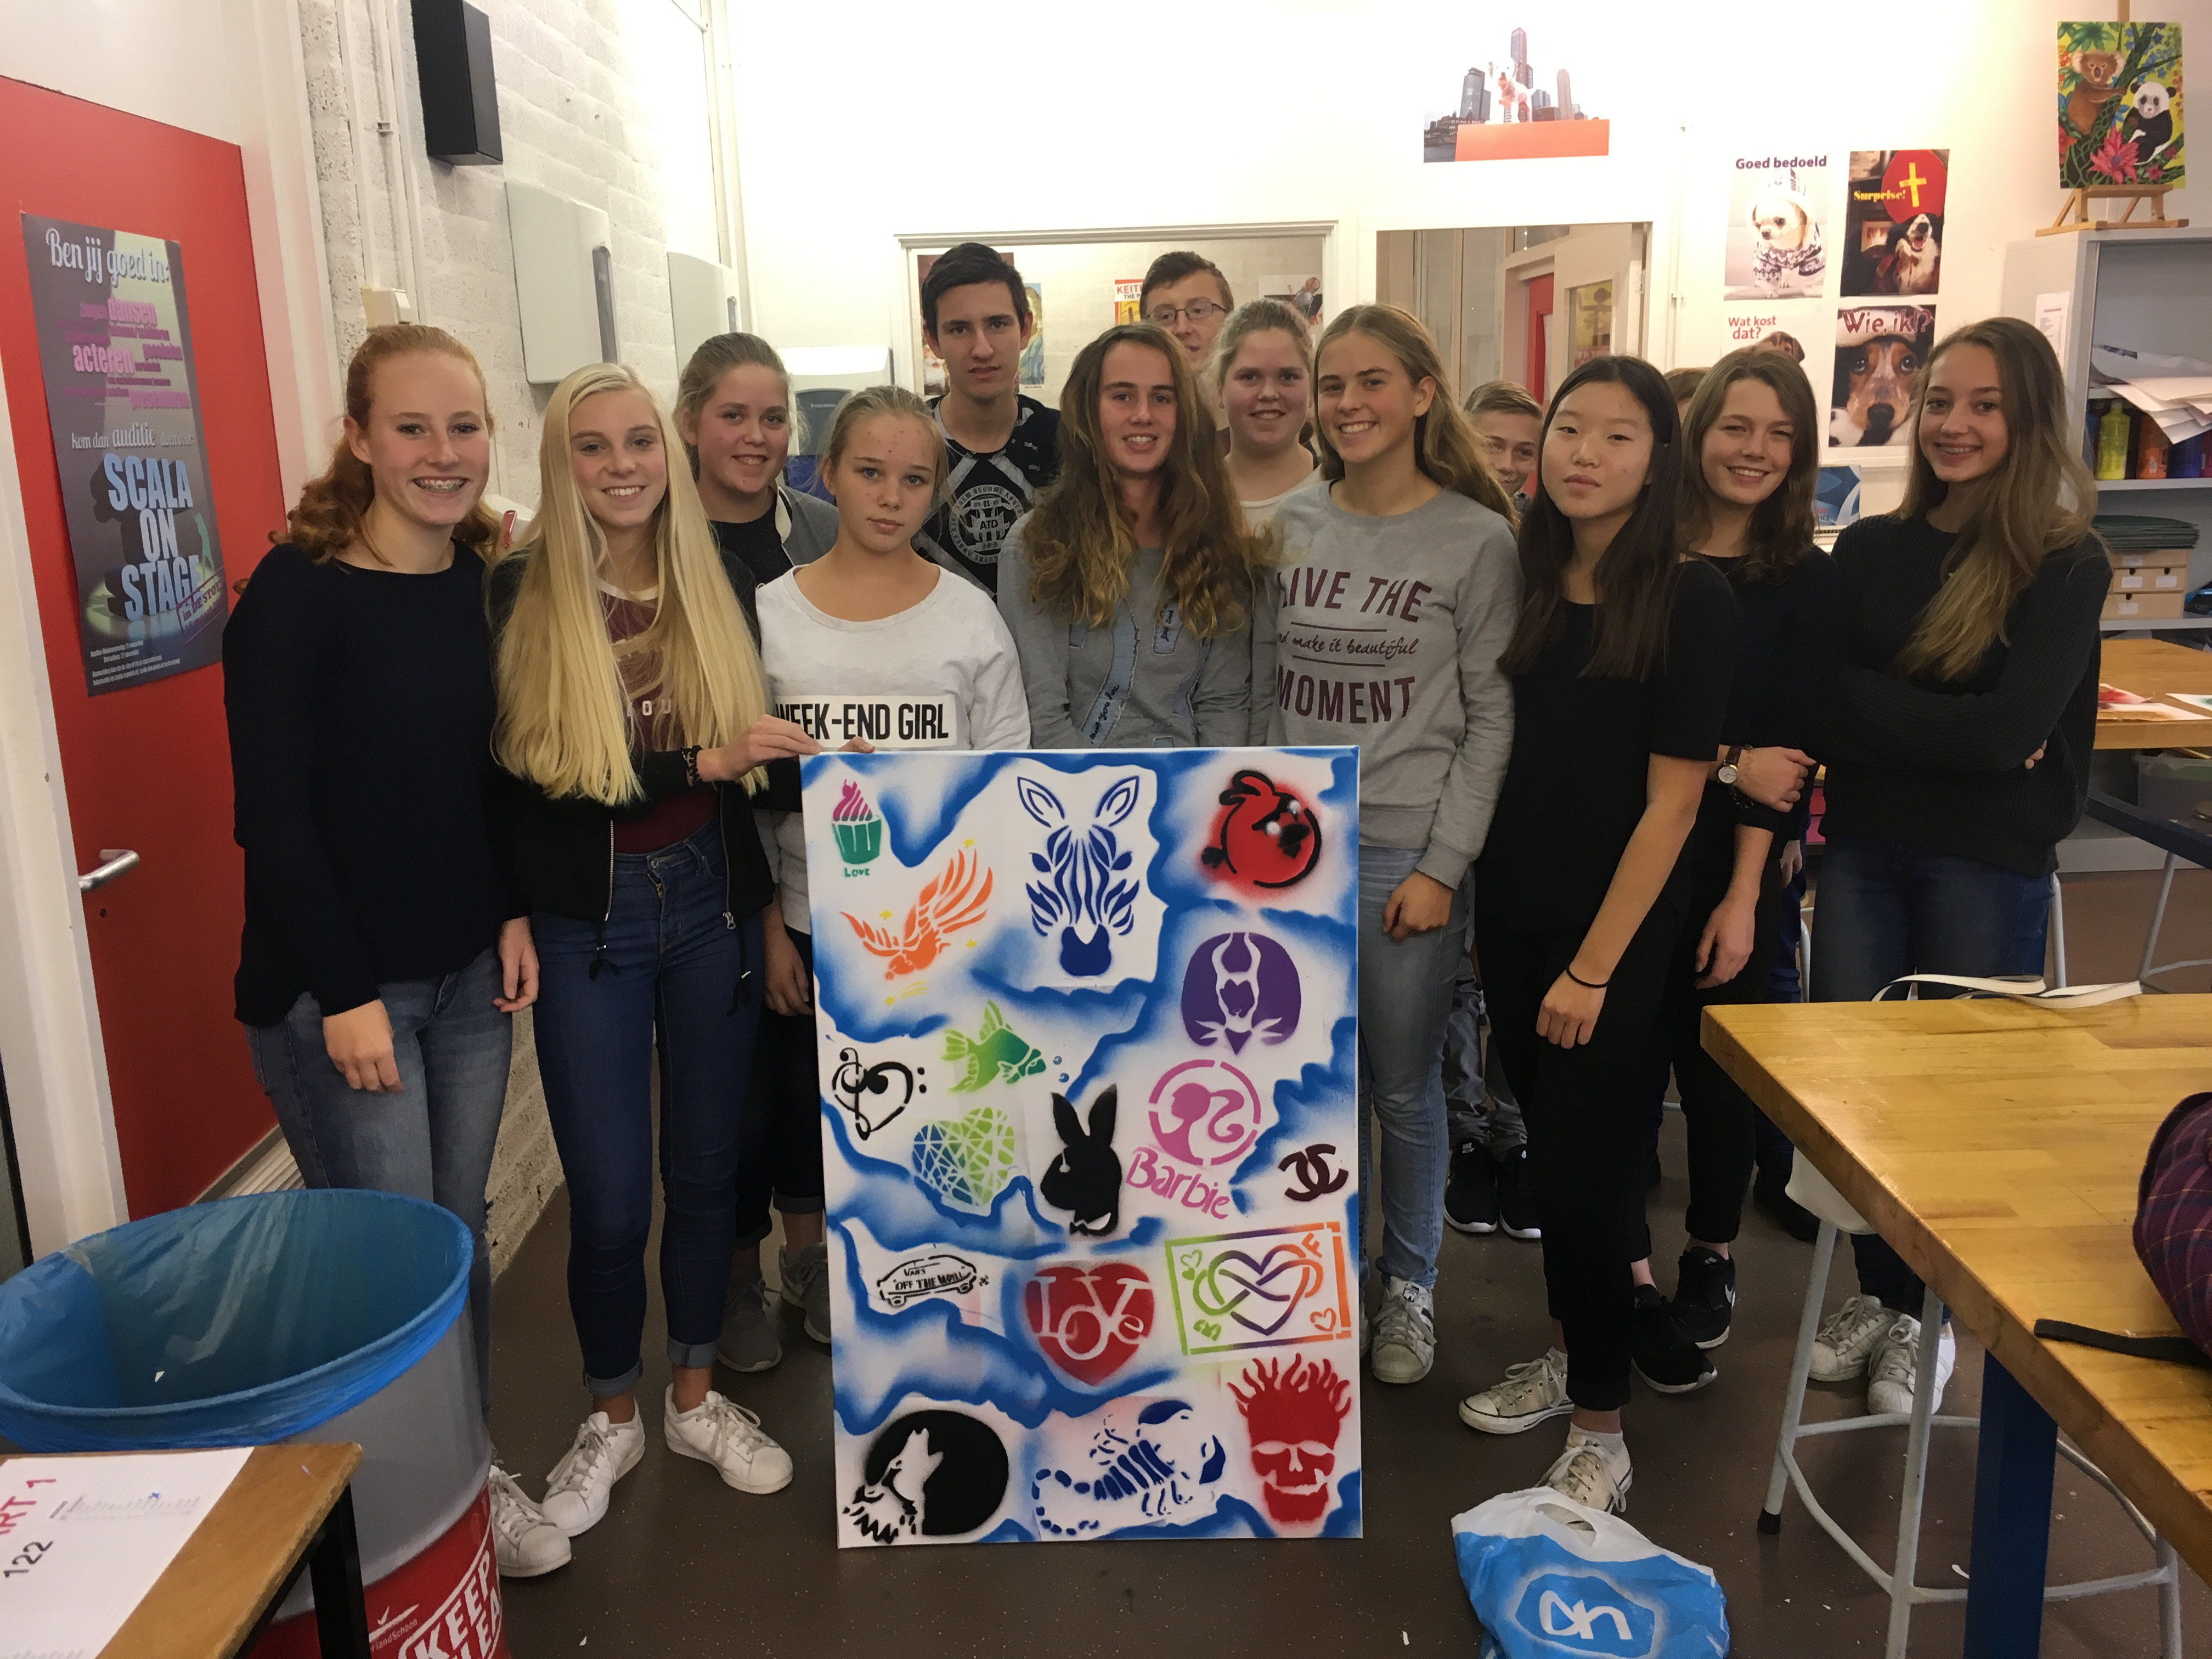 foto steetart workshops